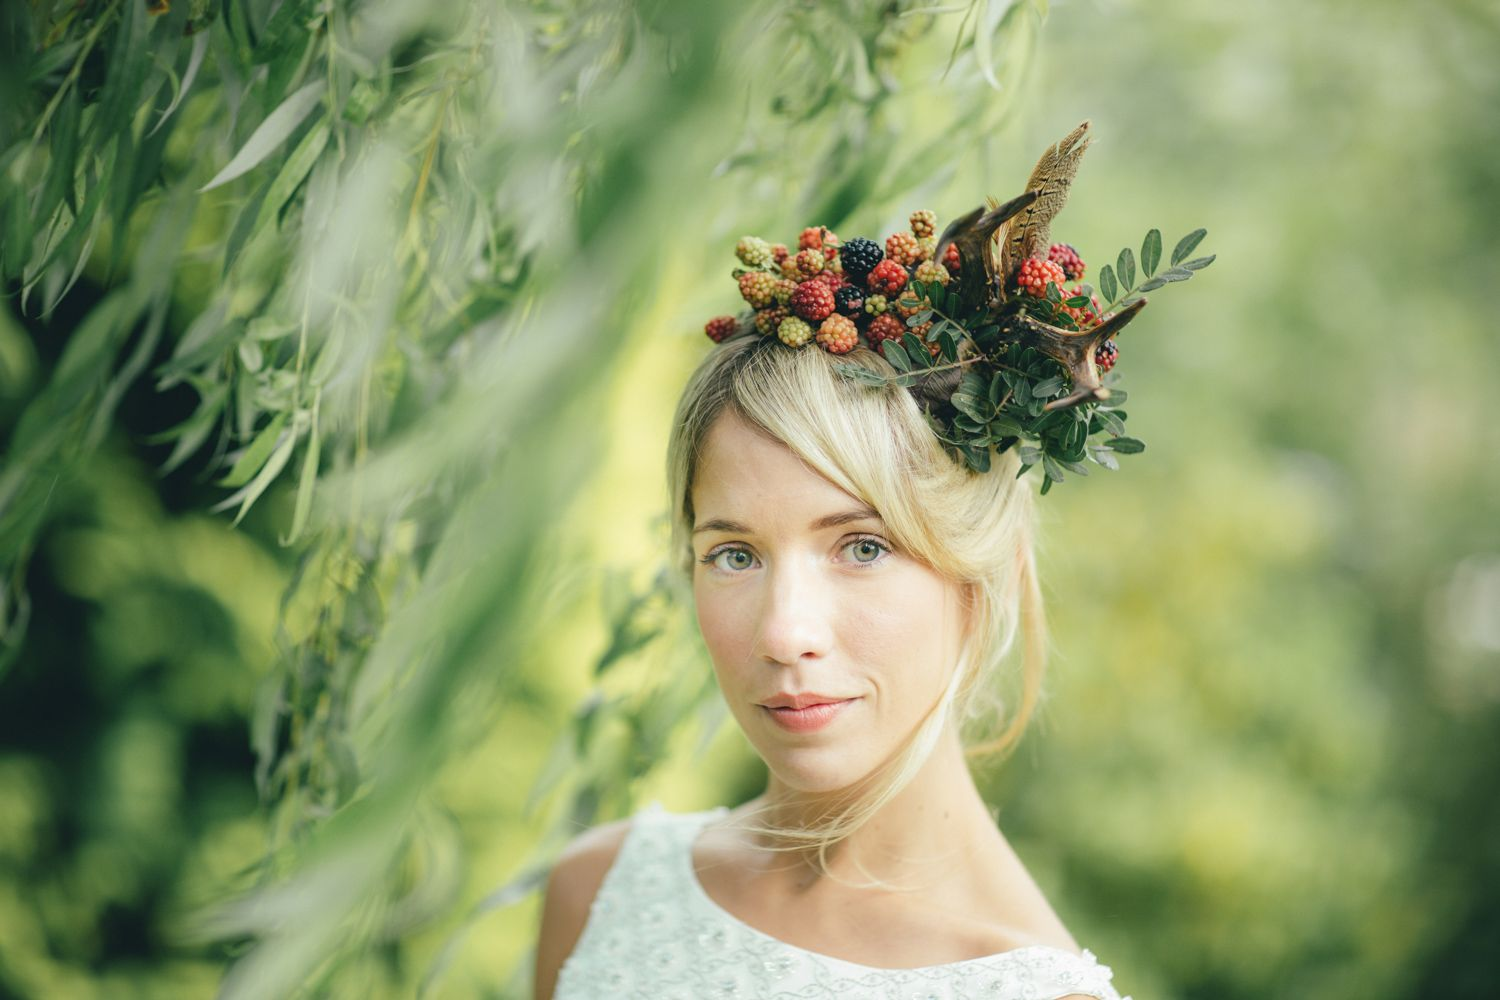 Gorgeous #outdoorwedding #headpiece by Sarah - www.simplybyarrangement.co.uk - Image by - www.tonidarcy.co.uk